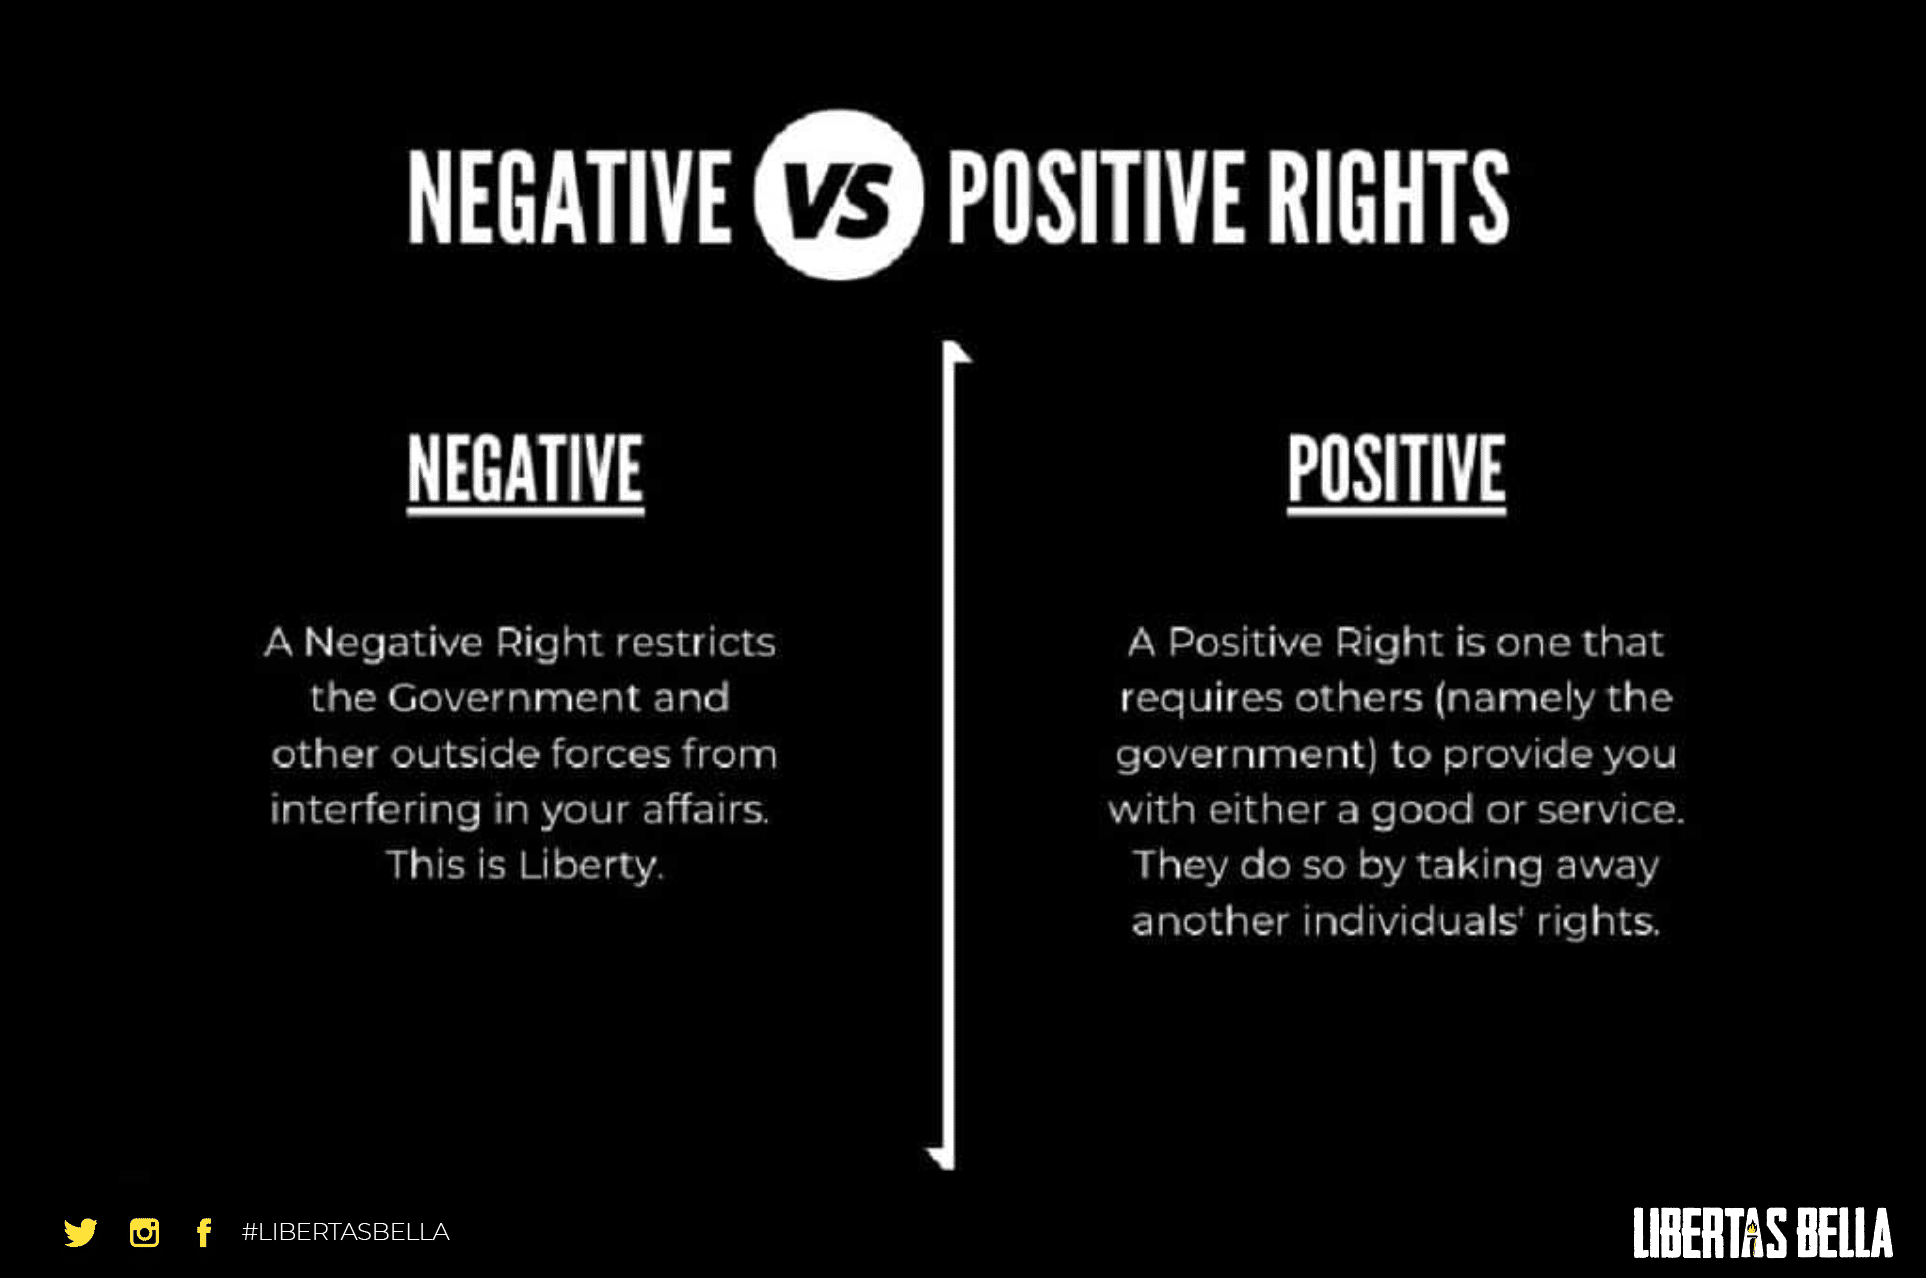 negative vs positive rights